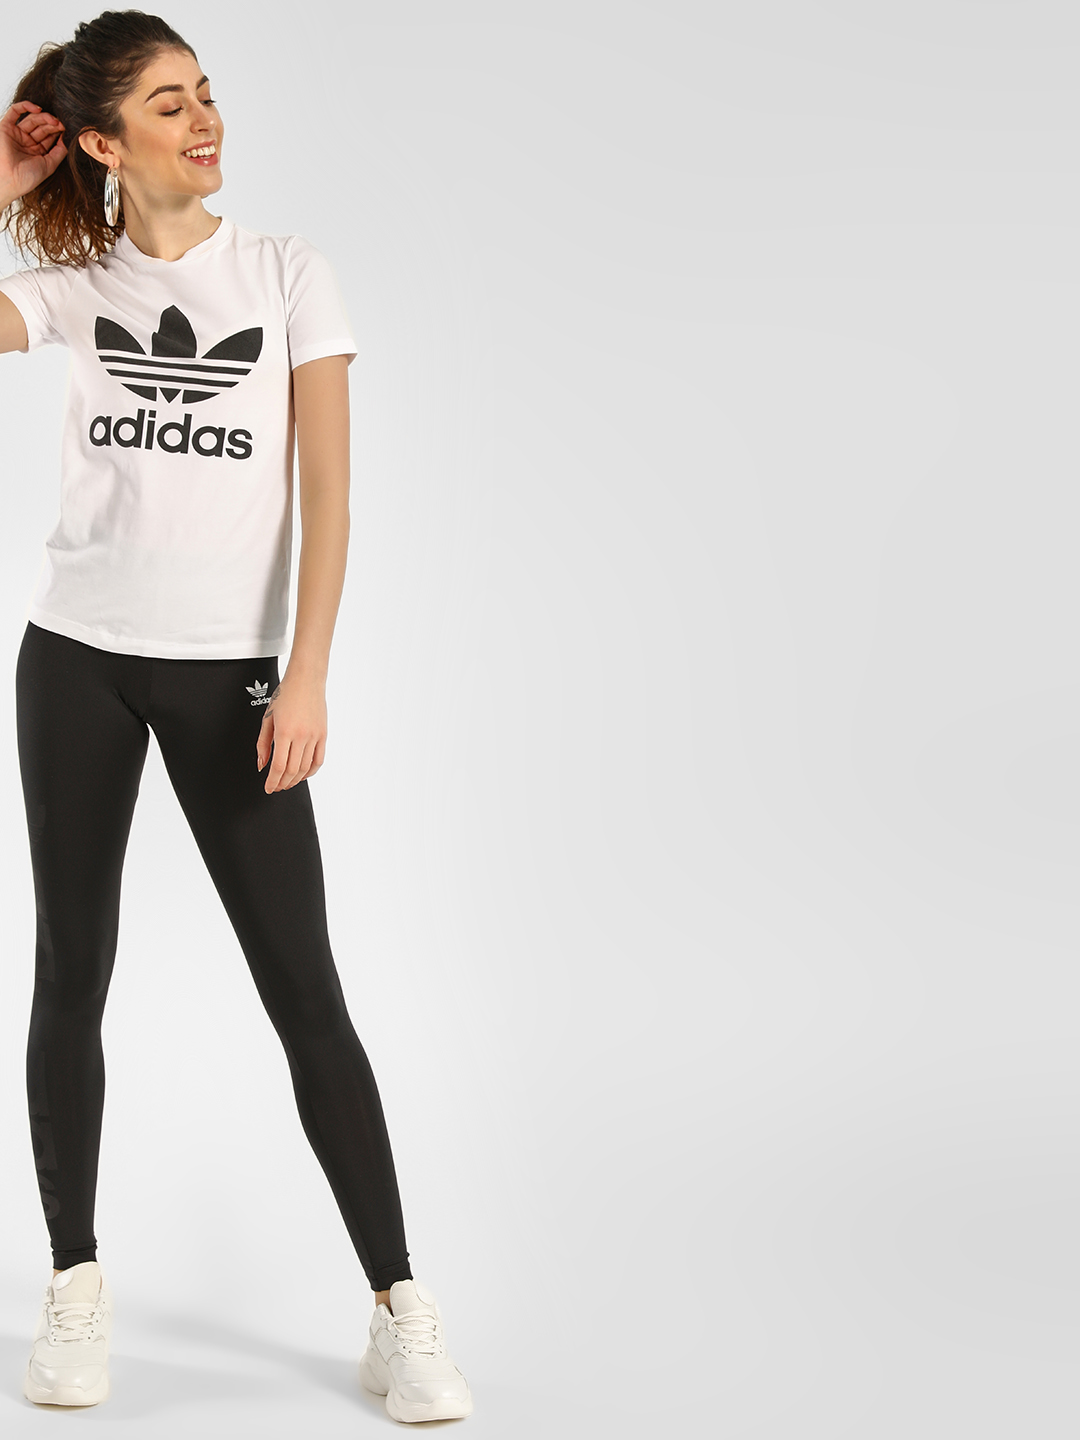 Adidas Originals Black Tights 1